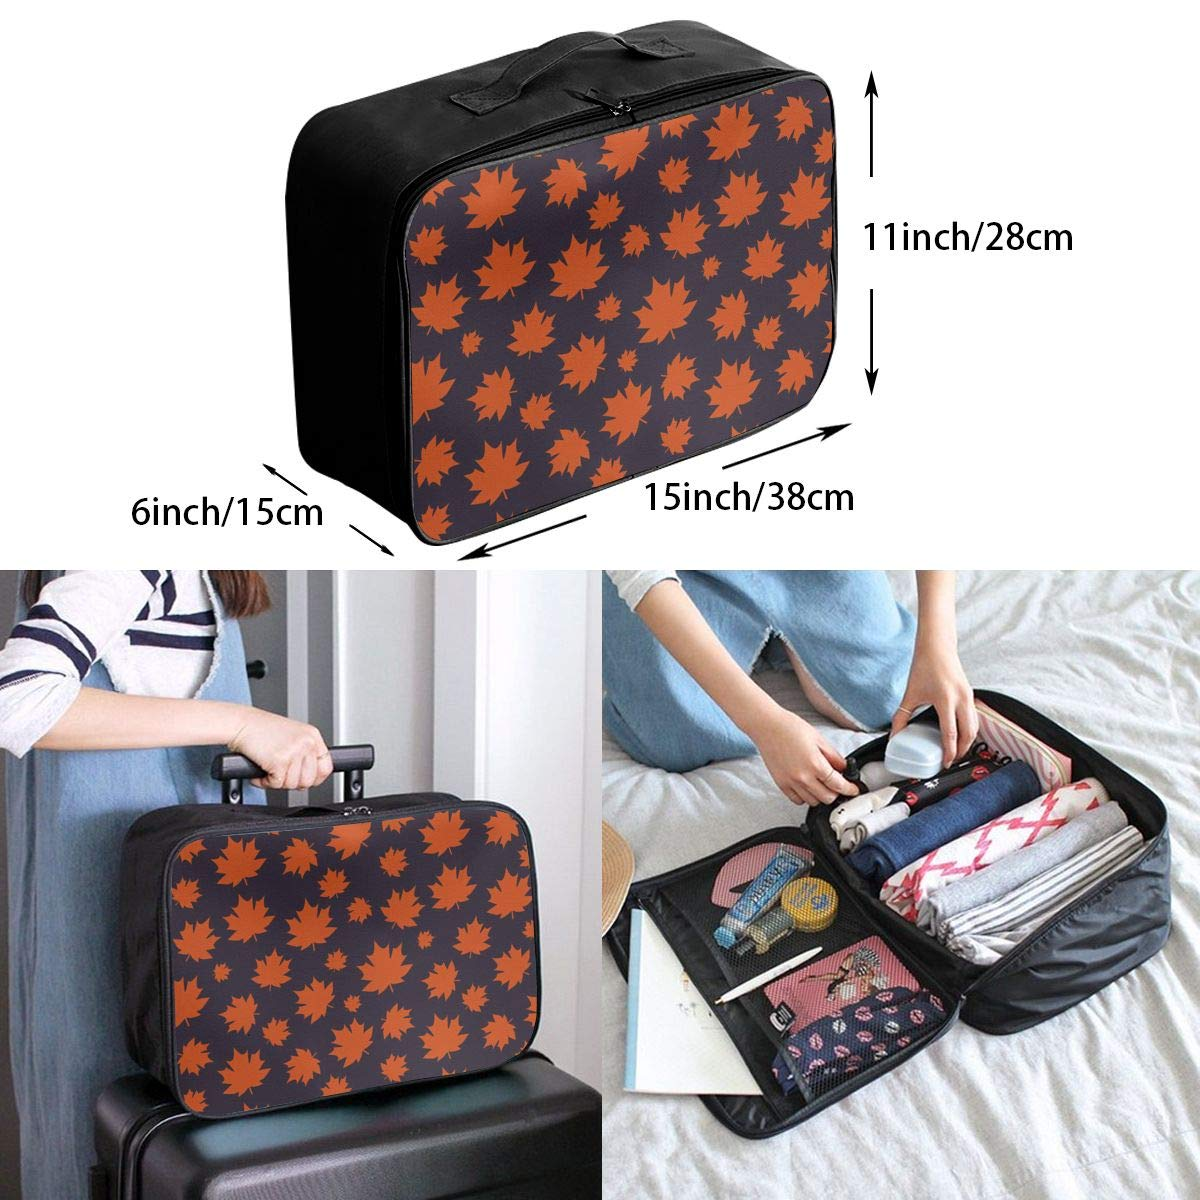 Autumn Seamless Pattern with Maple Leaves On Canvas Travel Weekender Bag,Fashion Custom Lightweight Large Capacity Portable Luggage Bag,Suitcase Trolley Bag